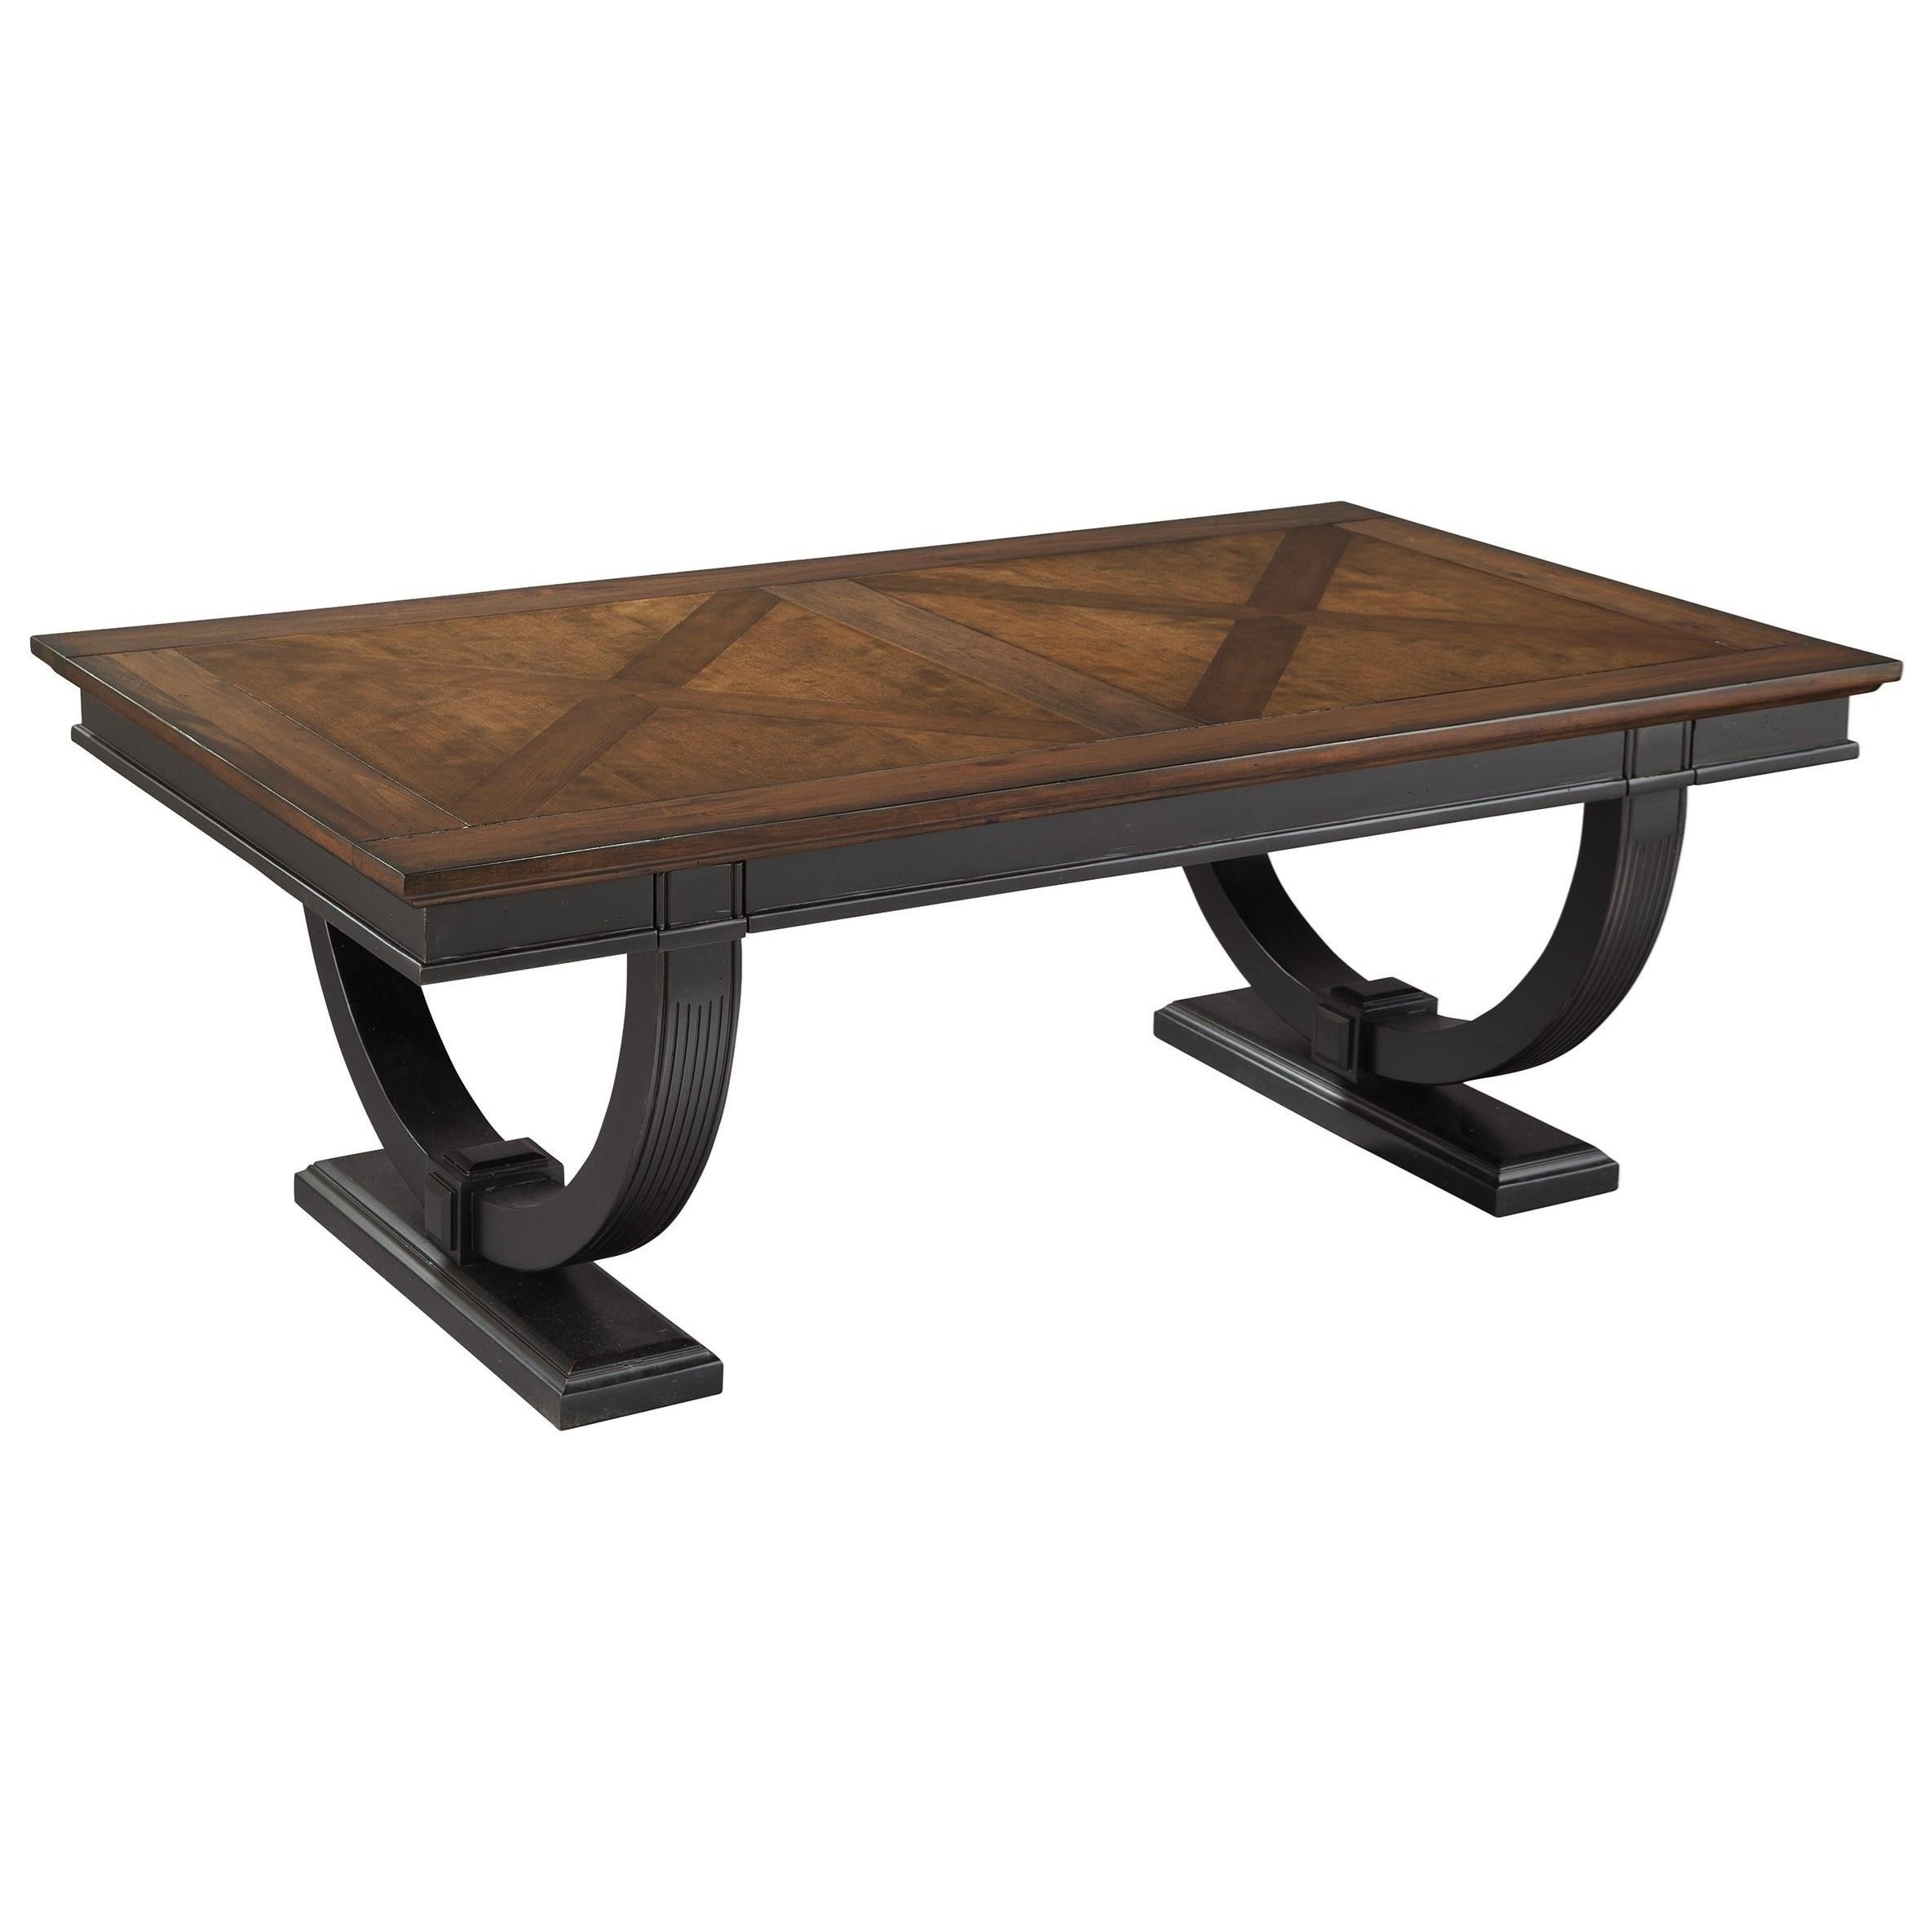 Beau Hekman Neo Classic Coffee Table With Two Tone Finish